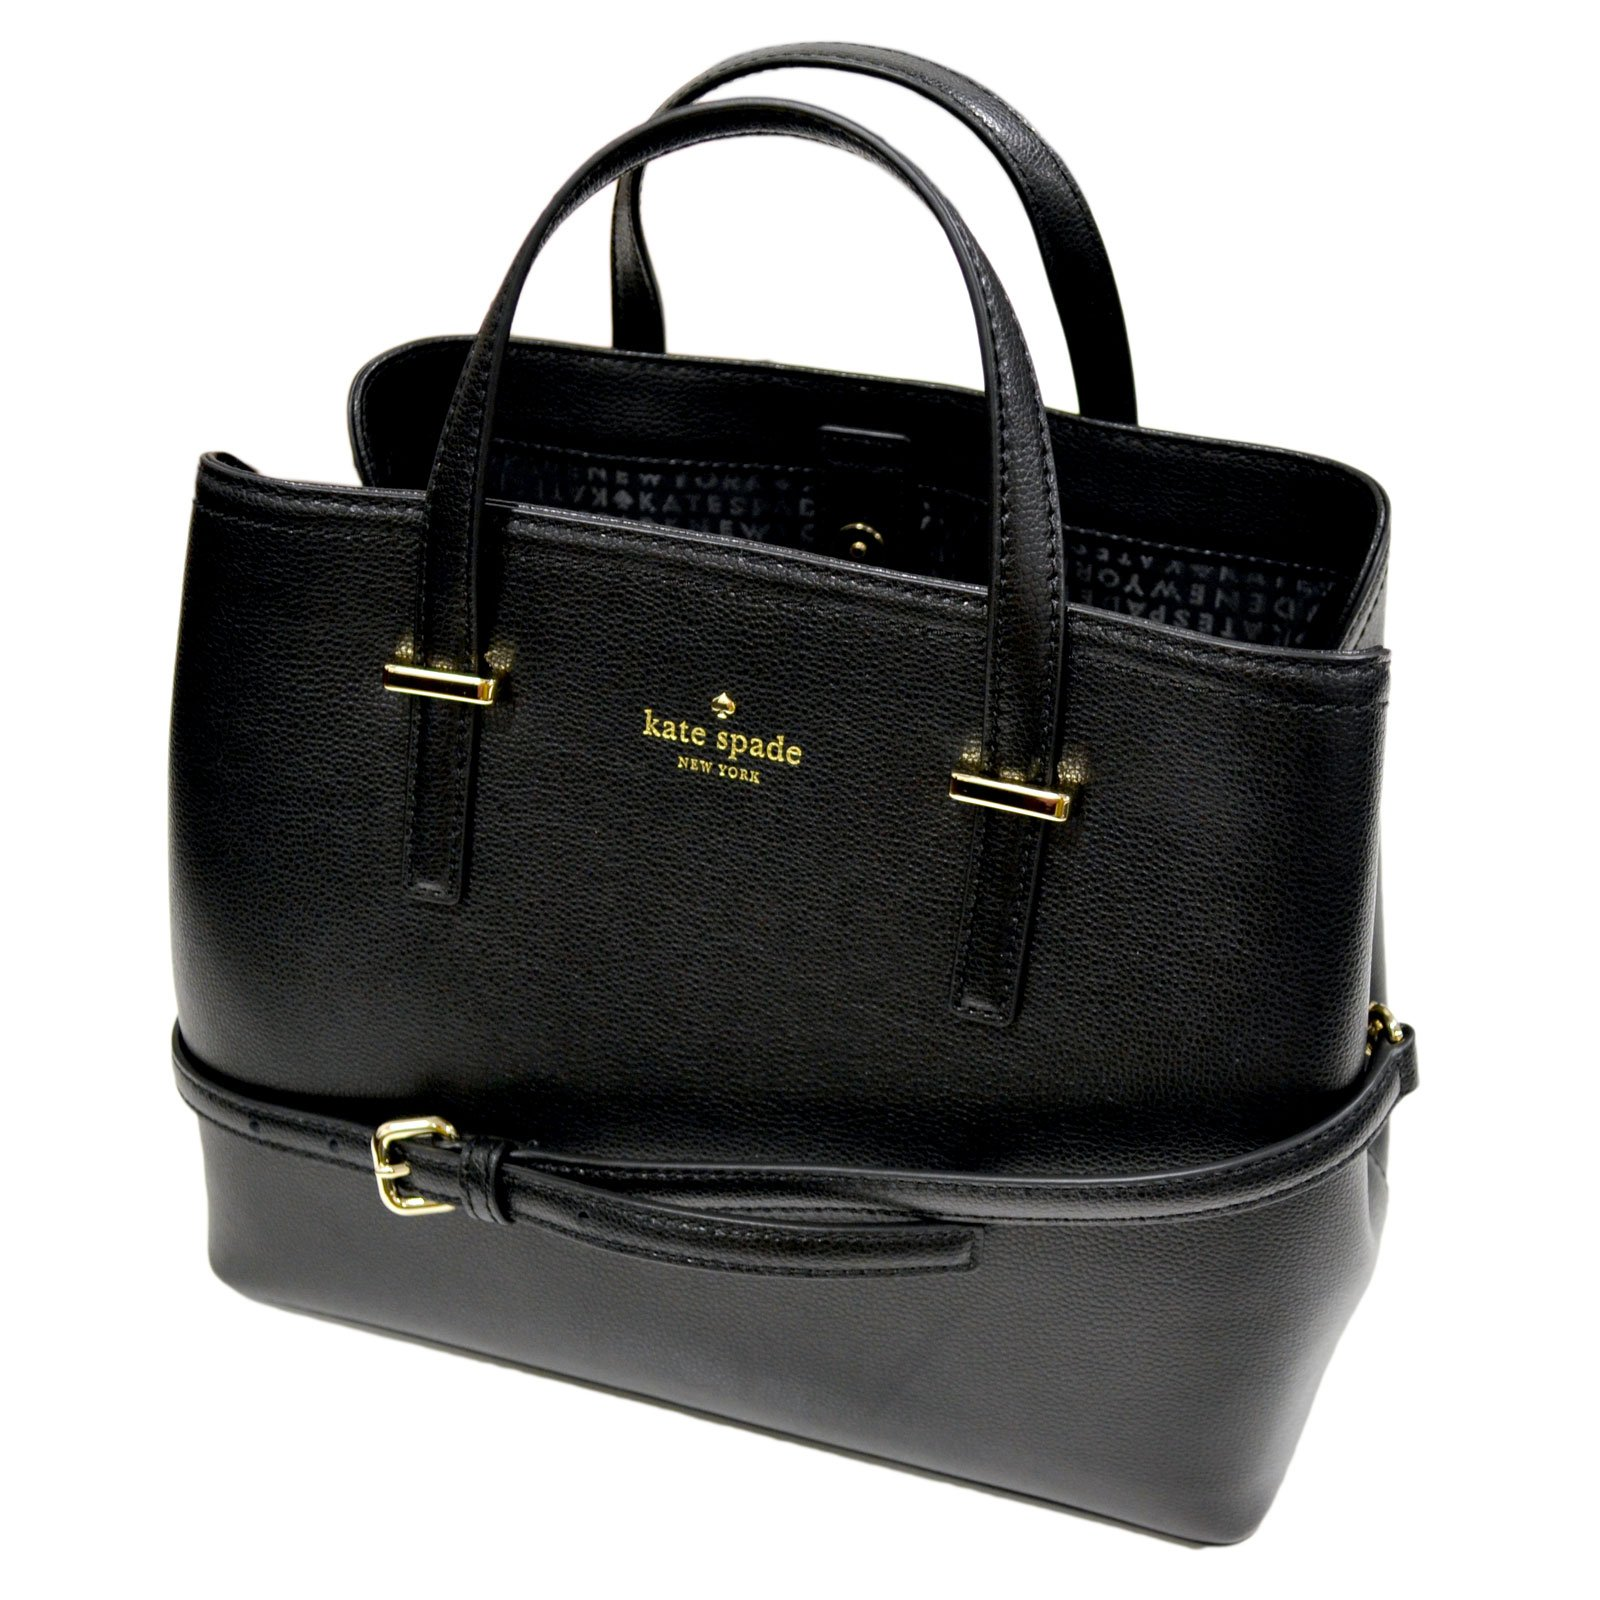 Kate Spade New York Patterson Drive Evangelie Purse (Black) by Kate Spade New York